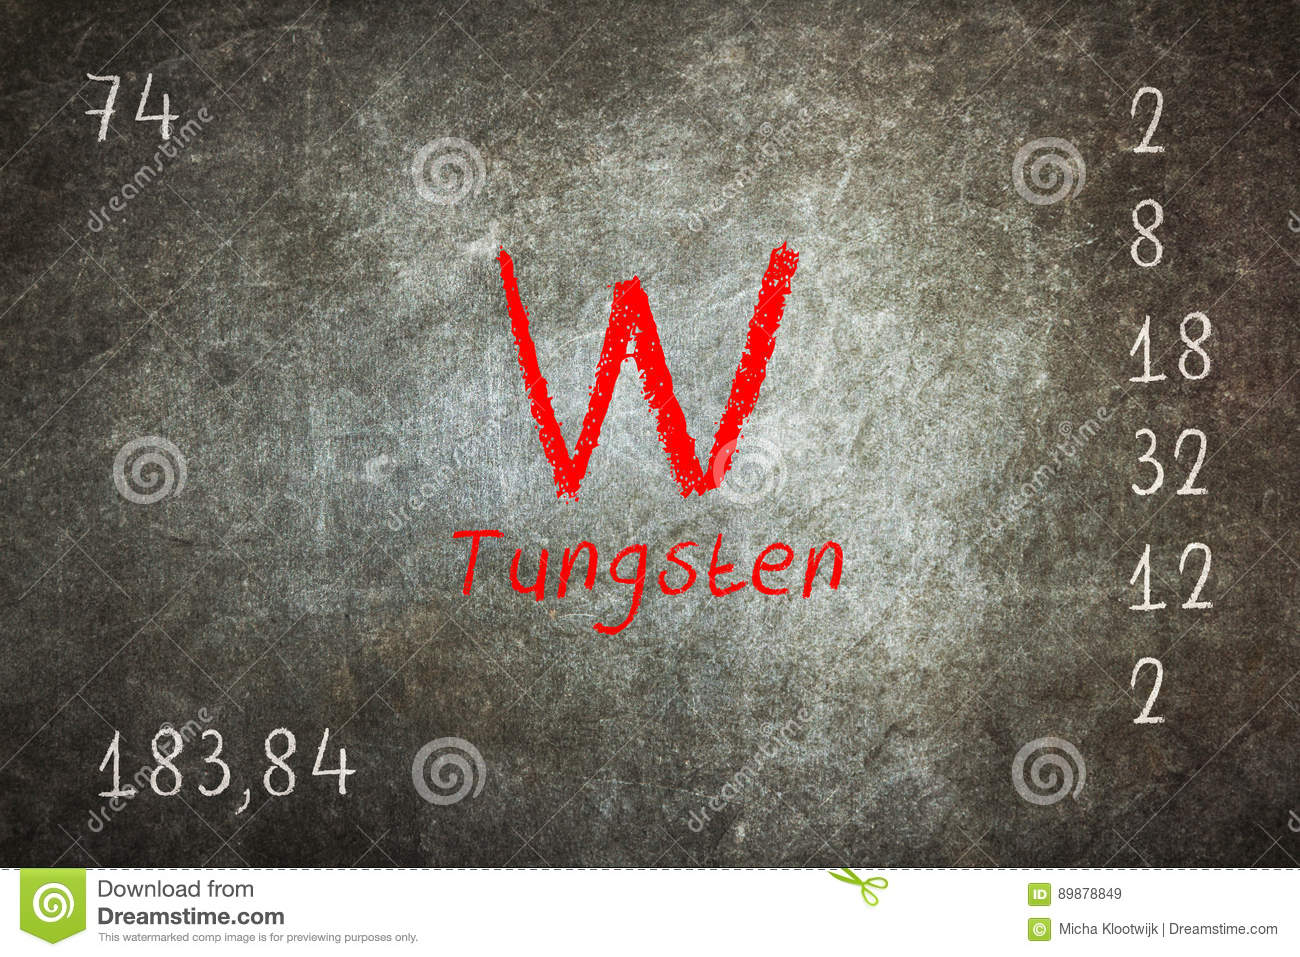 Symbol for tungsten on periodic table image collections periodic symbol for tungsten on periodic table image collections periodic symbol for tungsten on periodic table image gamestrikefo Choice Image